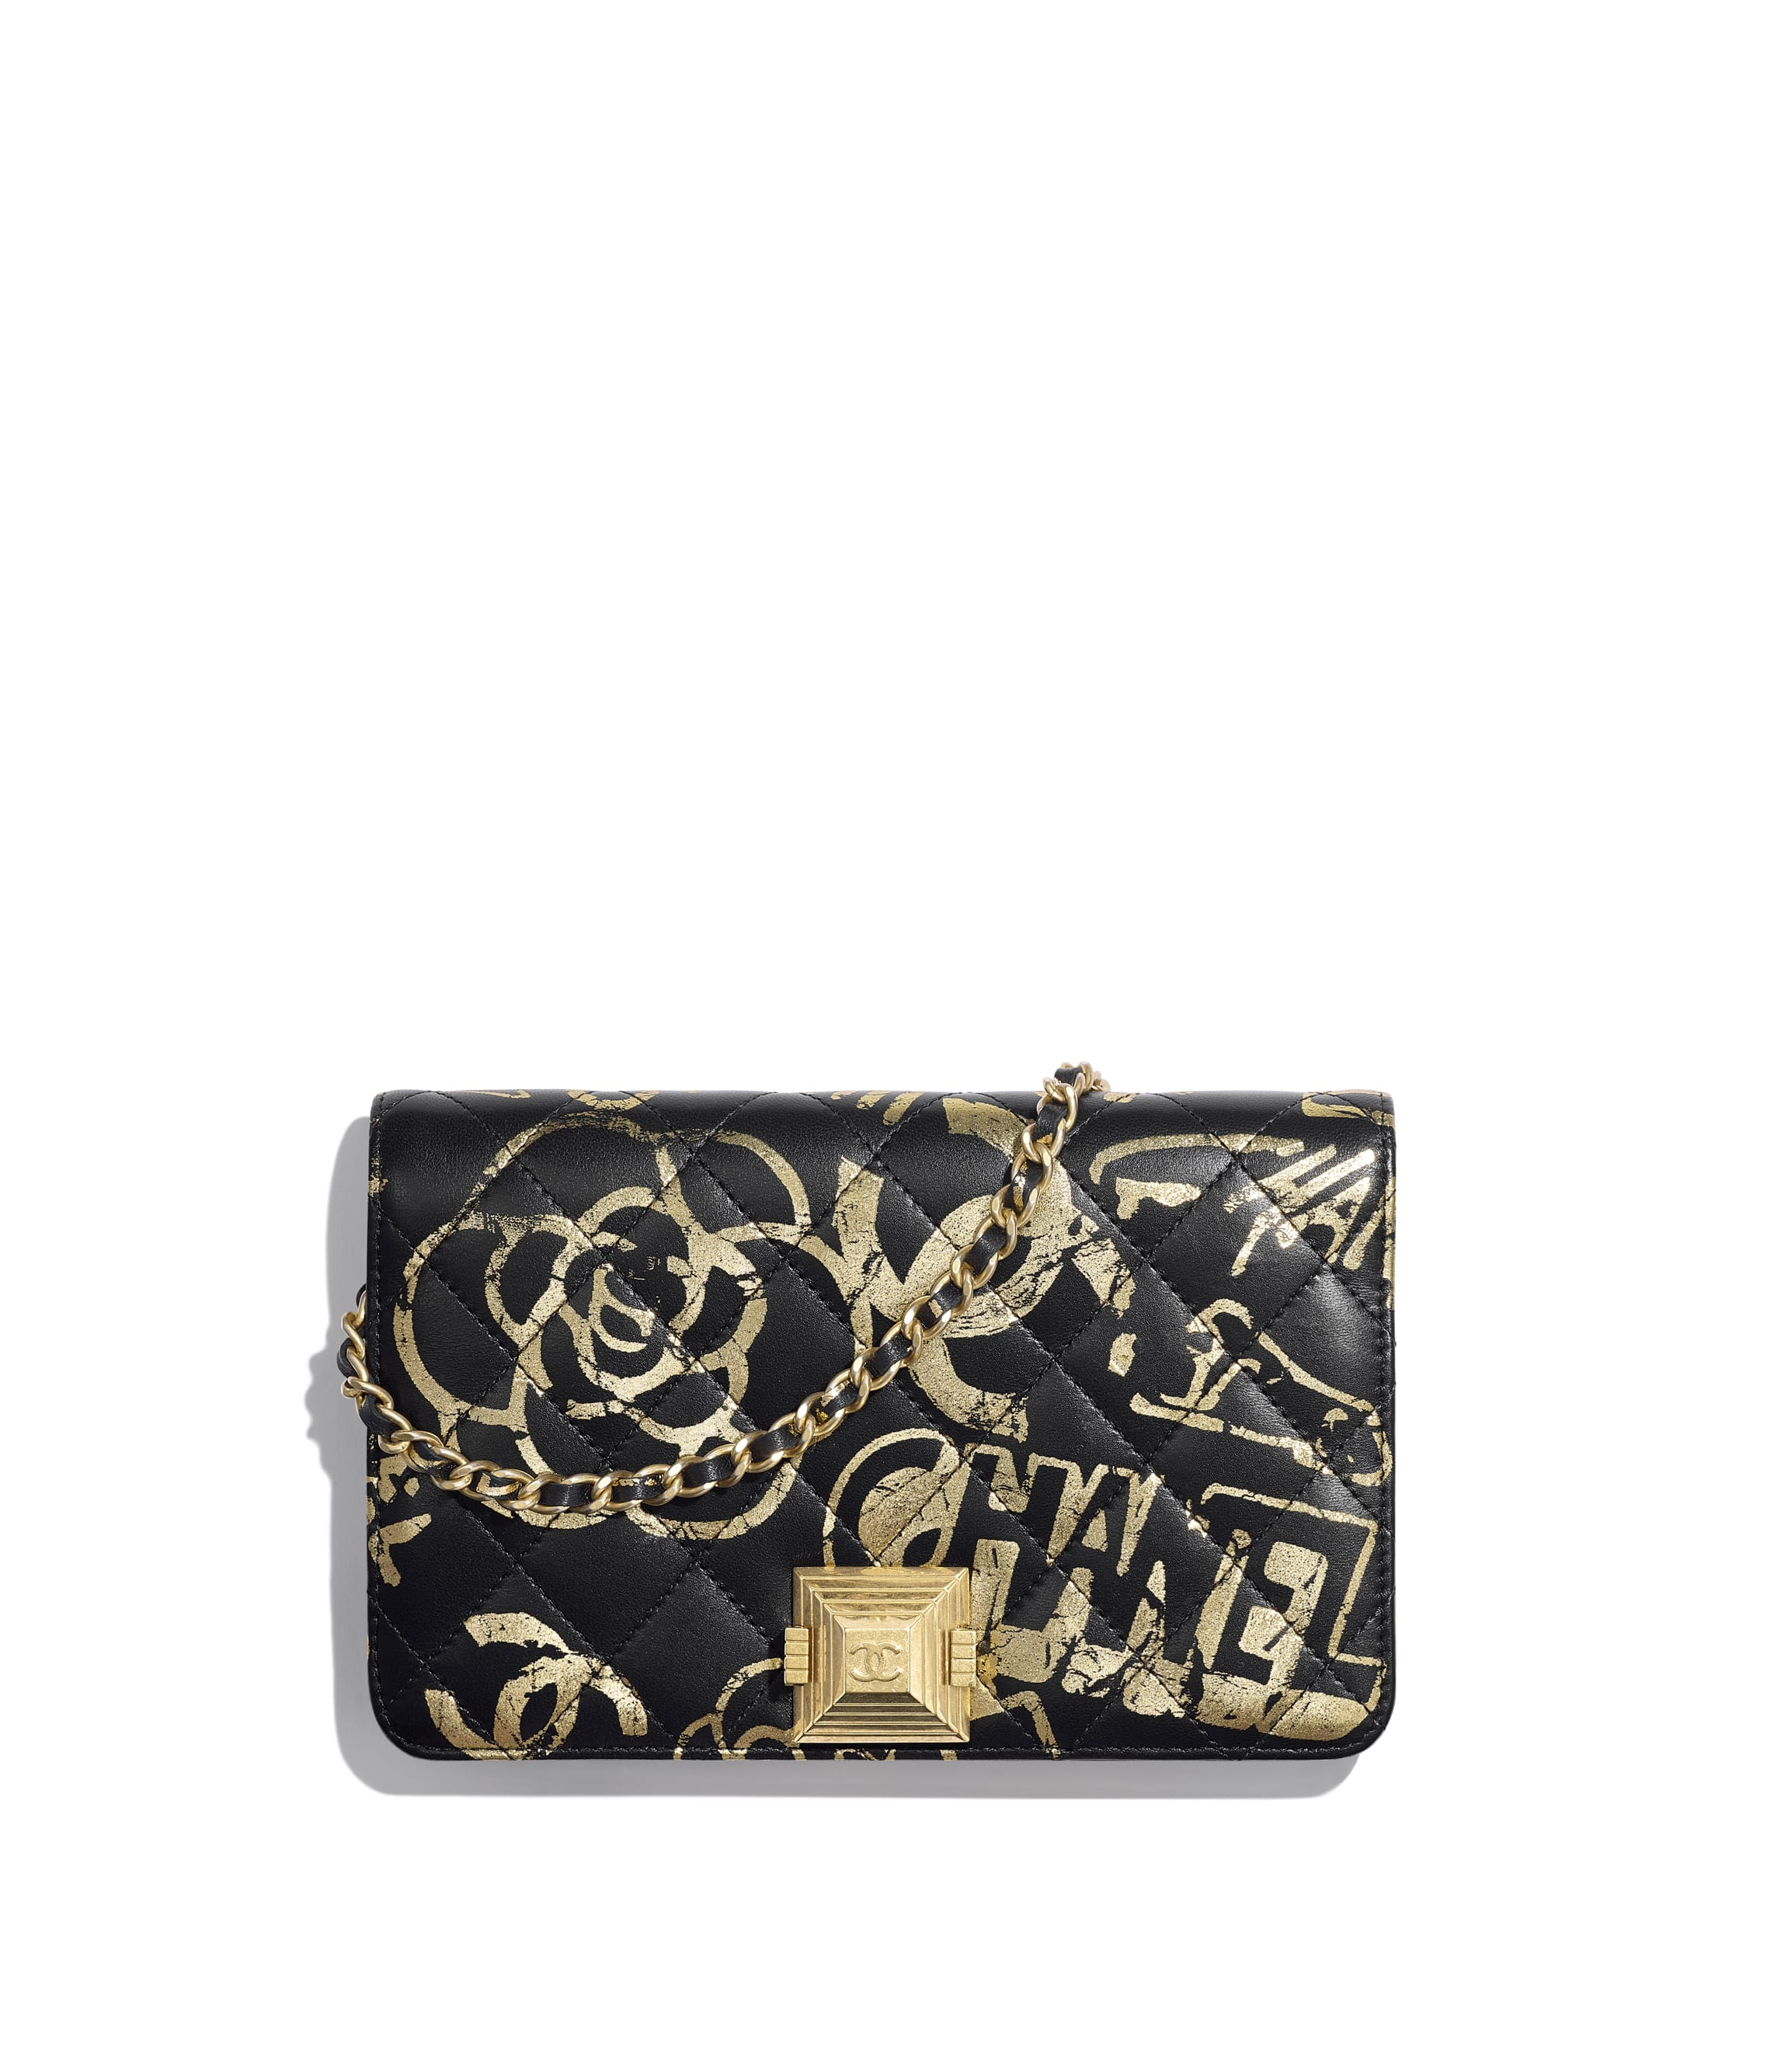 d943550af Small leather goods - CHANEL